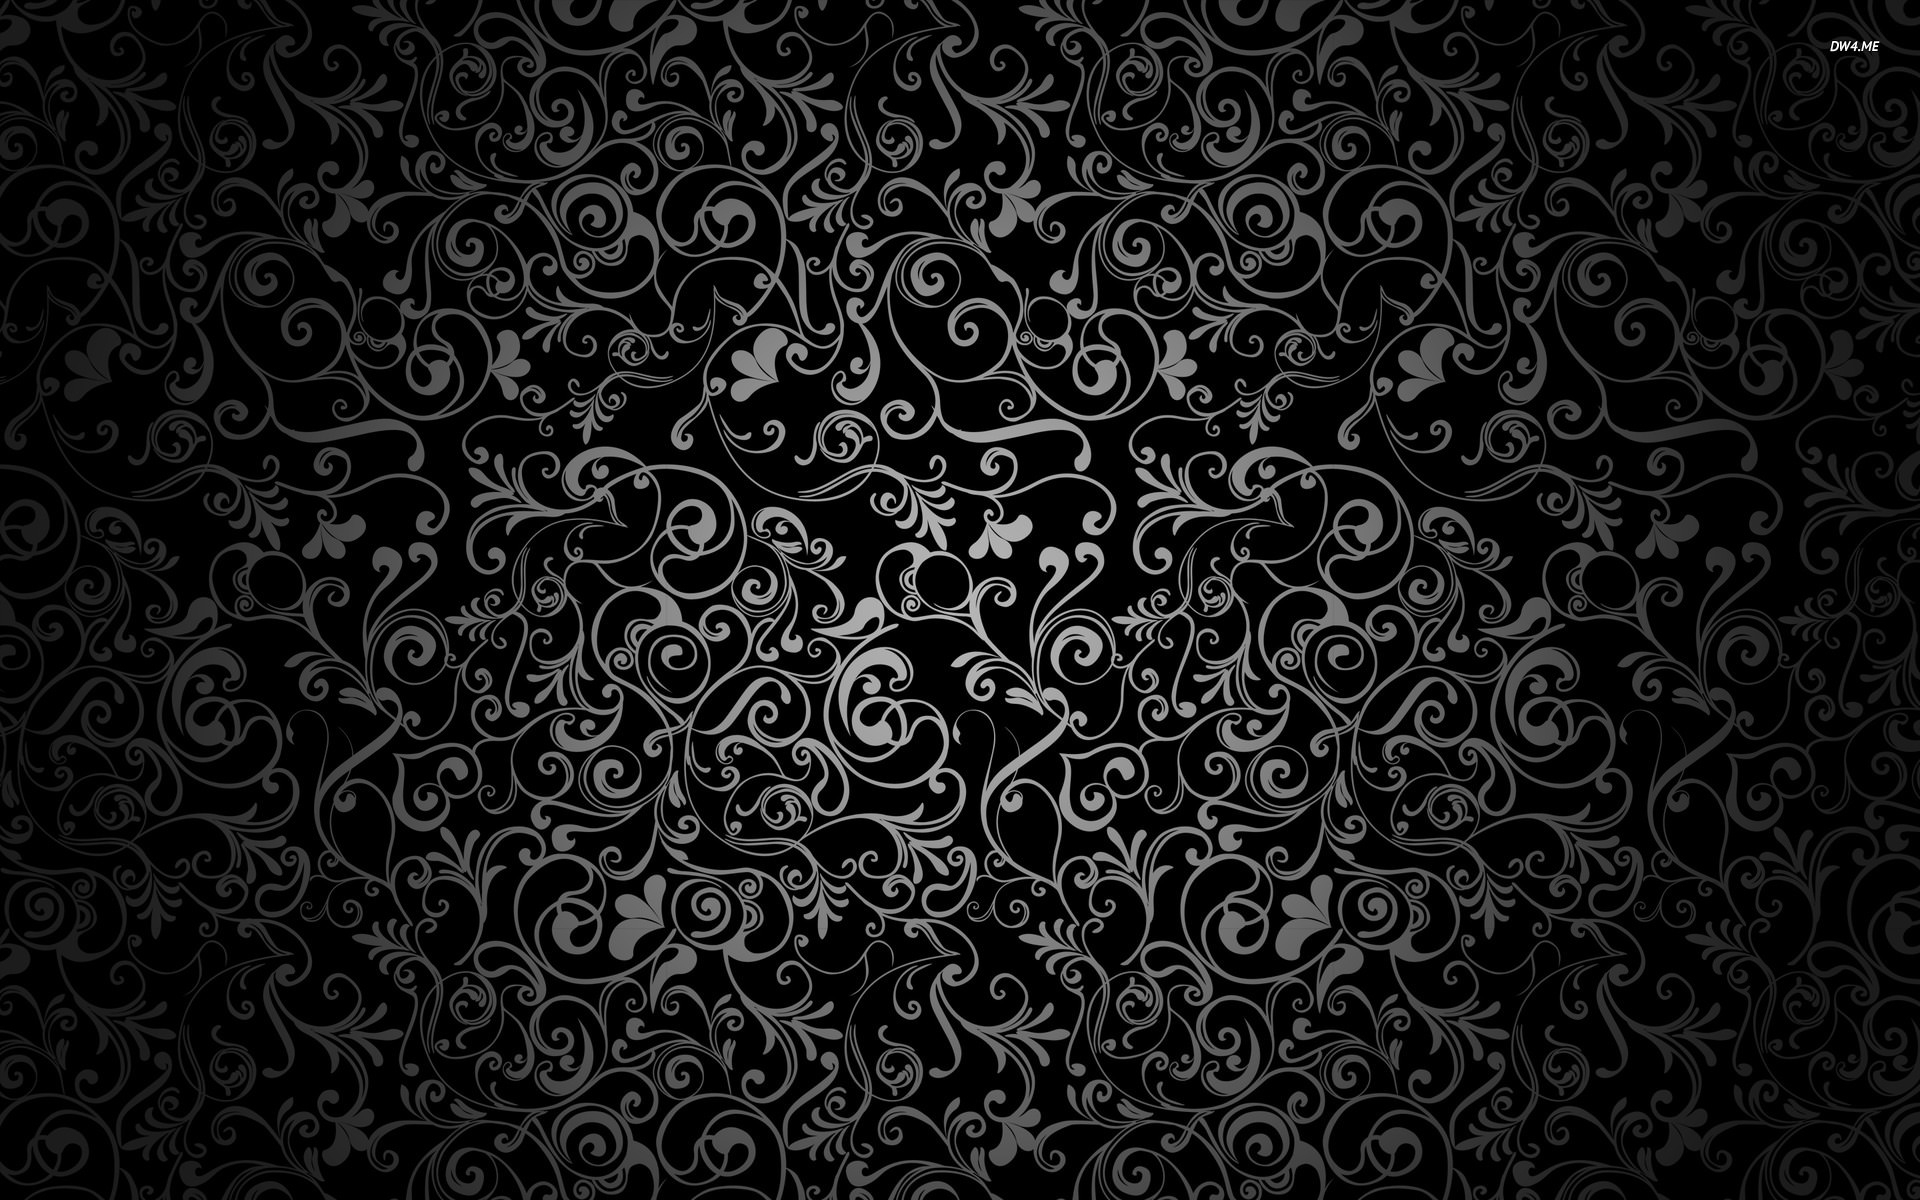 wallpapers and patterns on - photo #11